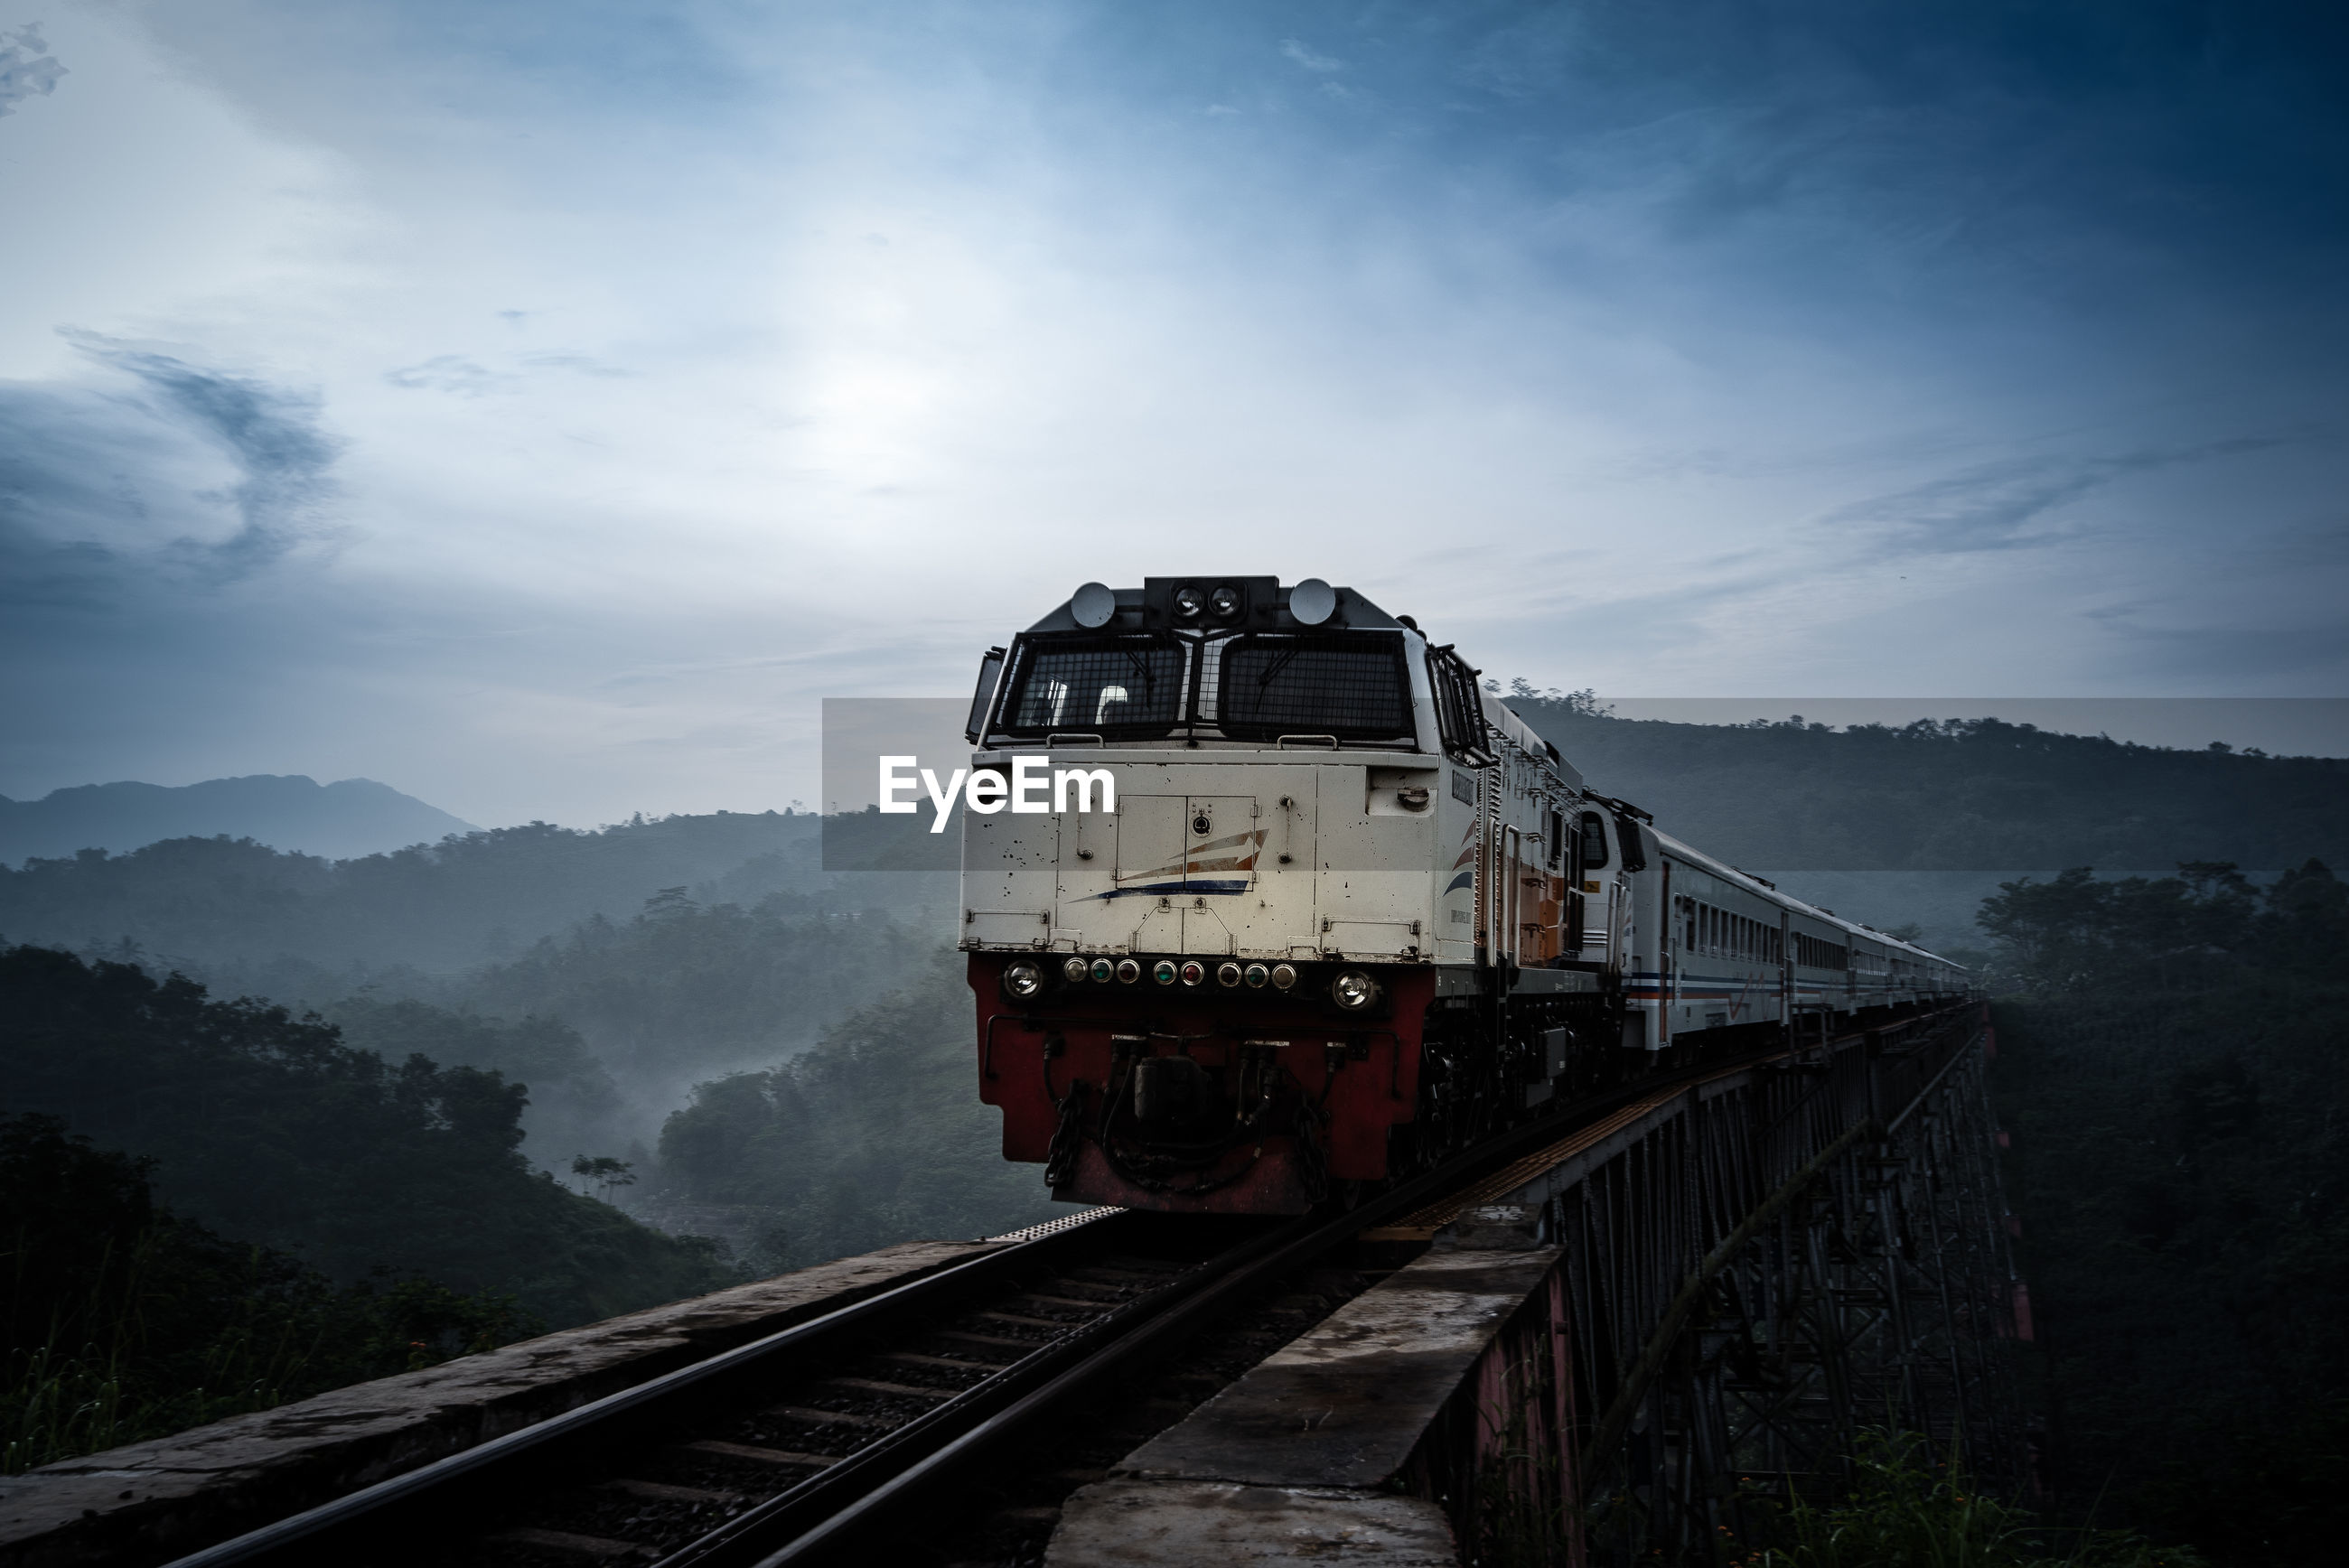 Train on railroad track against sky